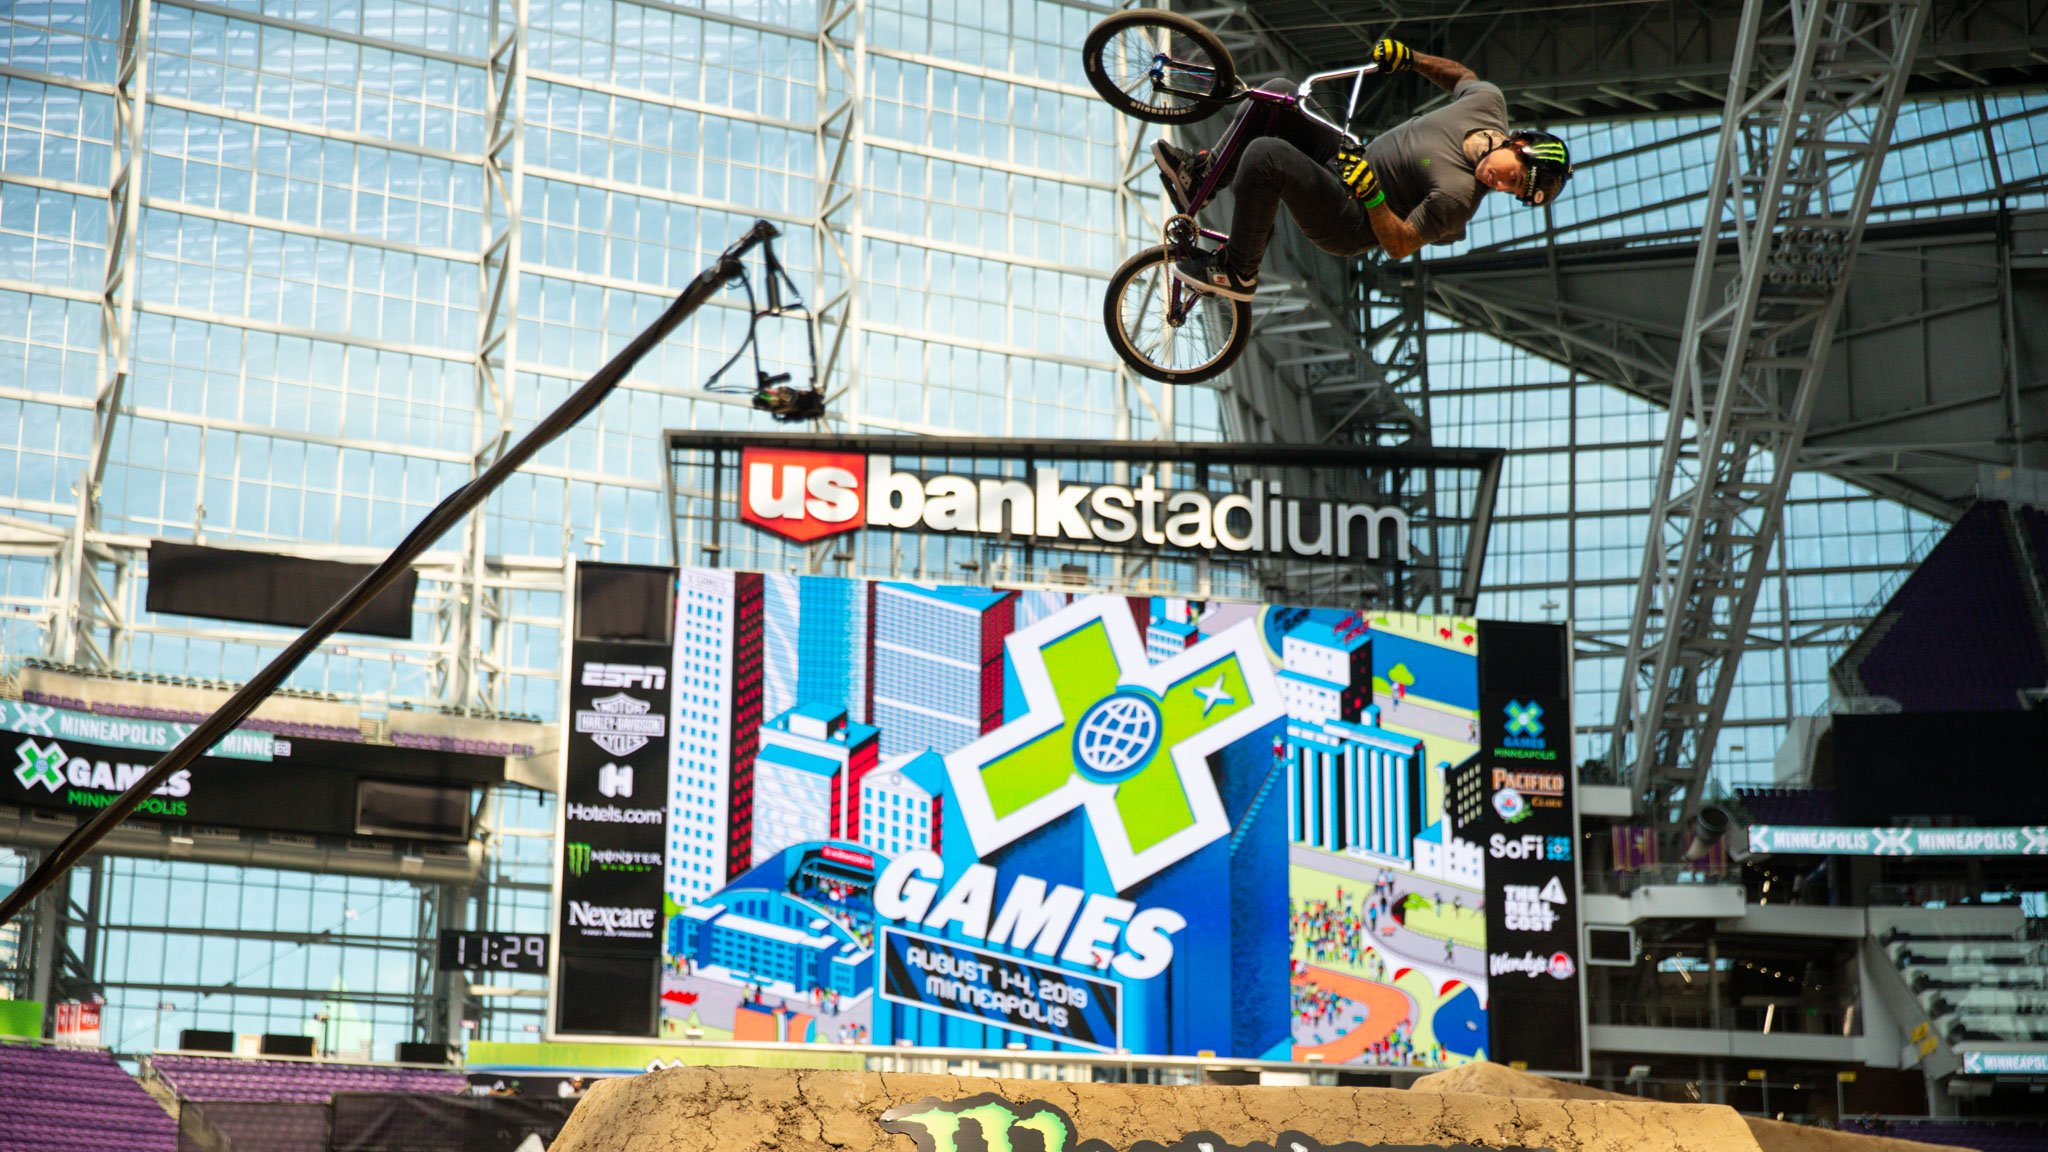 X Games on Twitter: